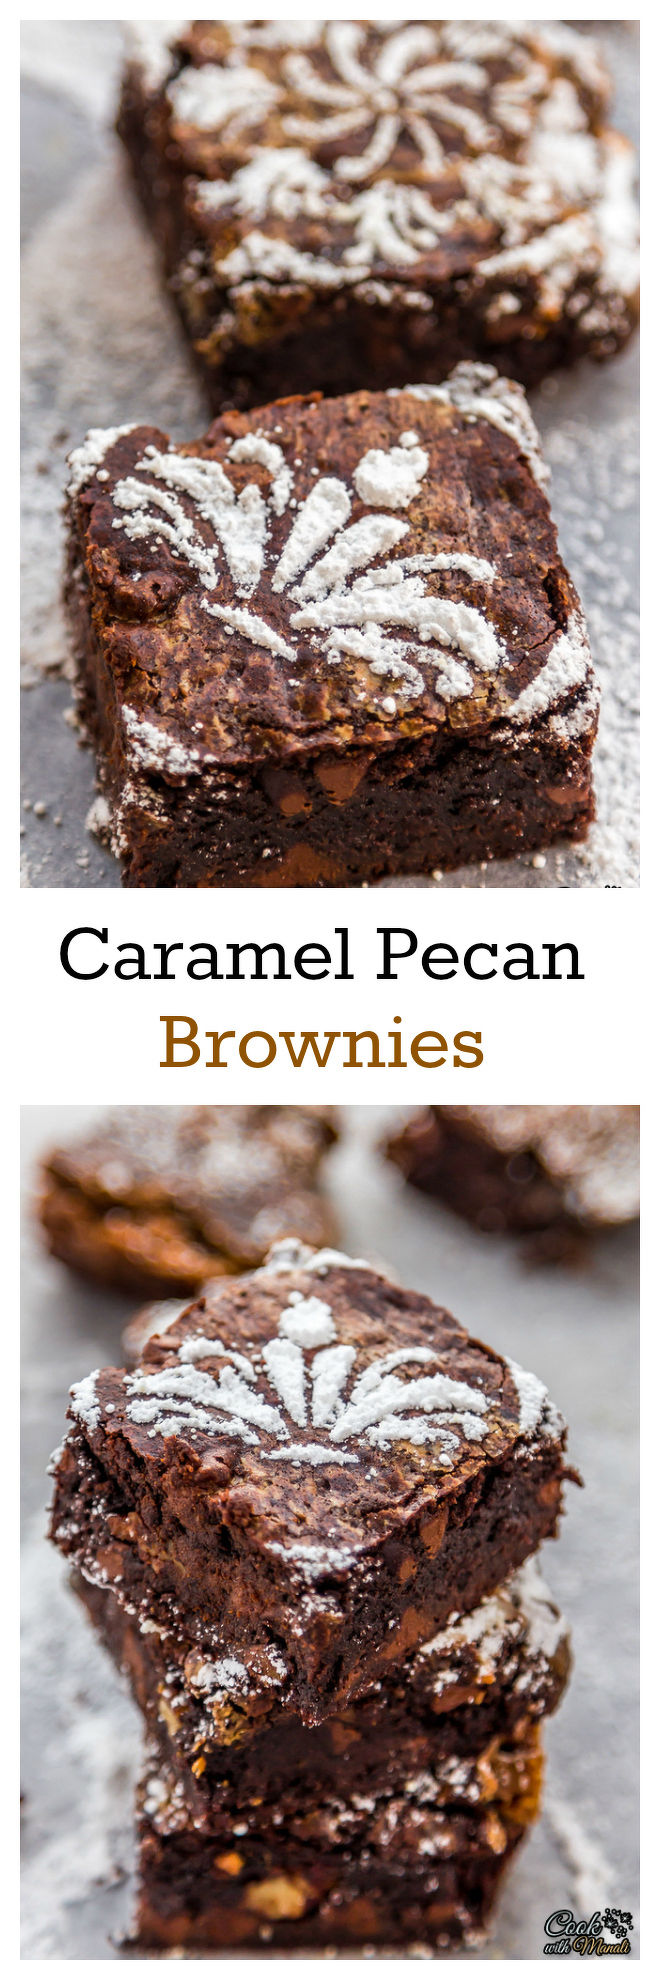 Caramel Pecan Brownies - Cook With Manali